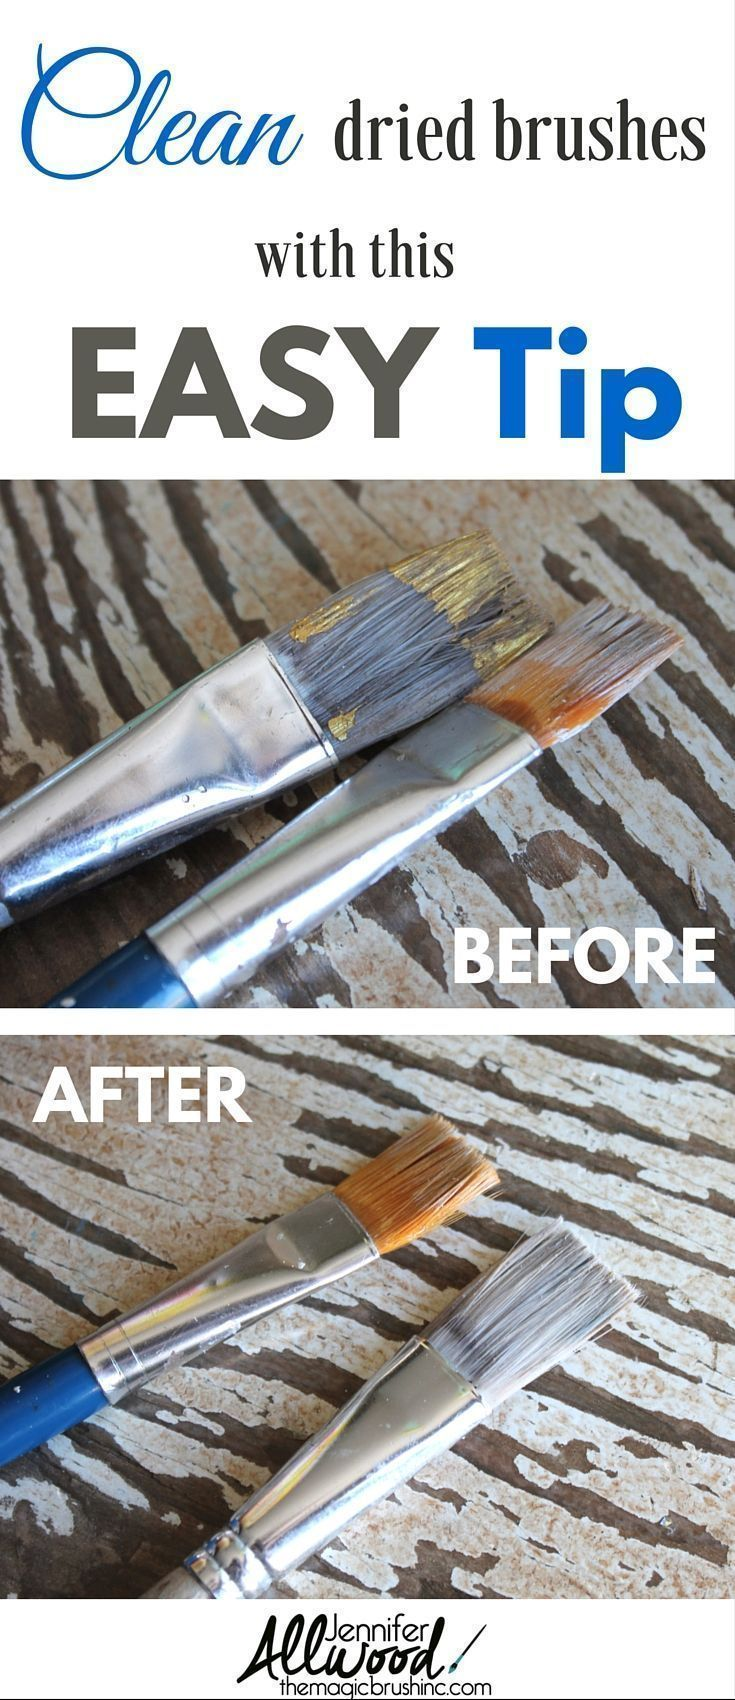 Ideas : I have one simple household solution to cleaning and saving your paint brushes! More Painting tips at theMagicBrushinc.com #painting #paintcolors #diy #tutorial #howto #homedecor #diyhomedecor